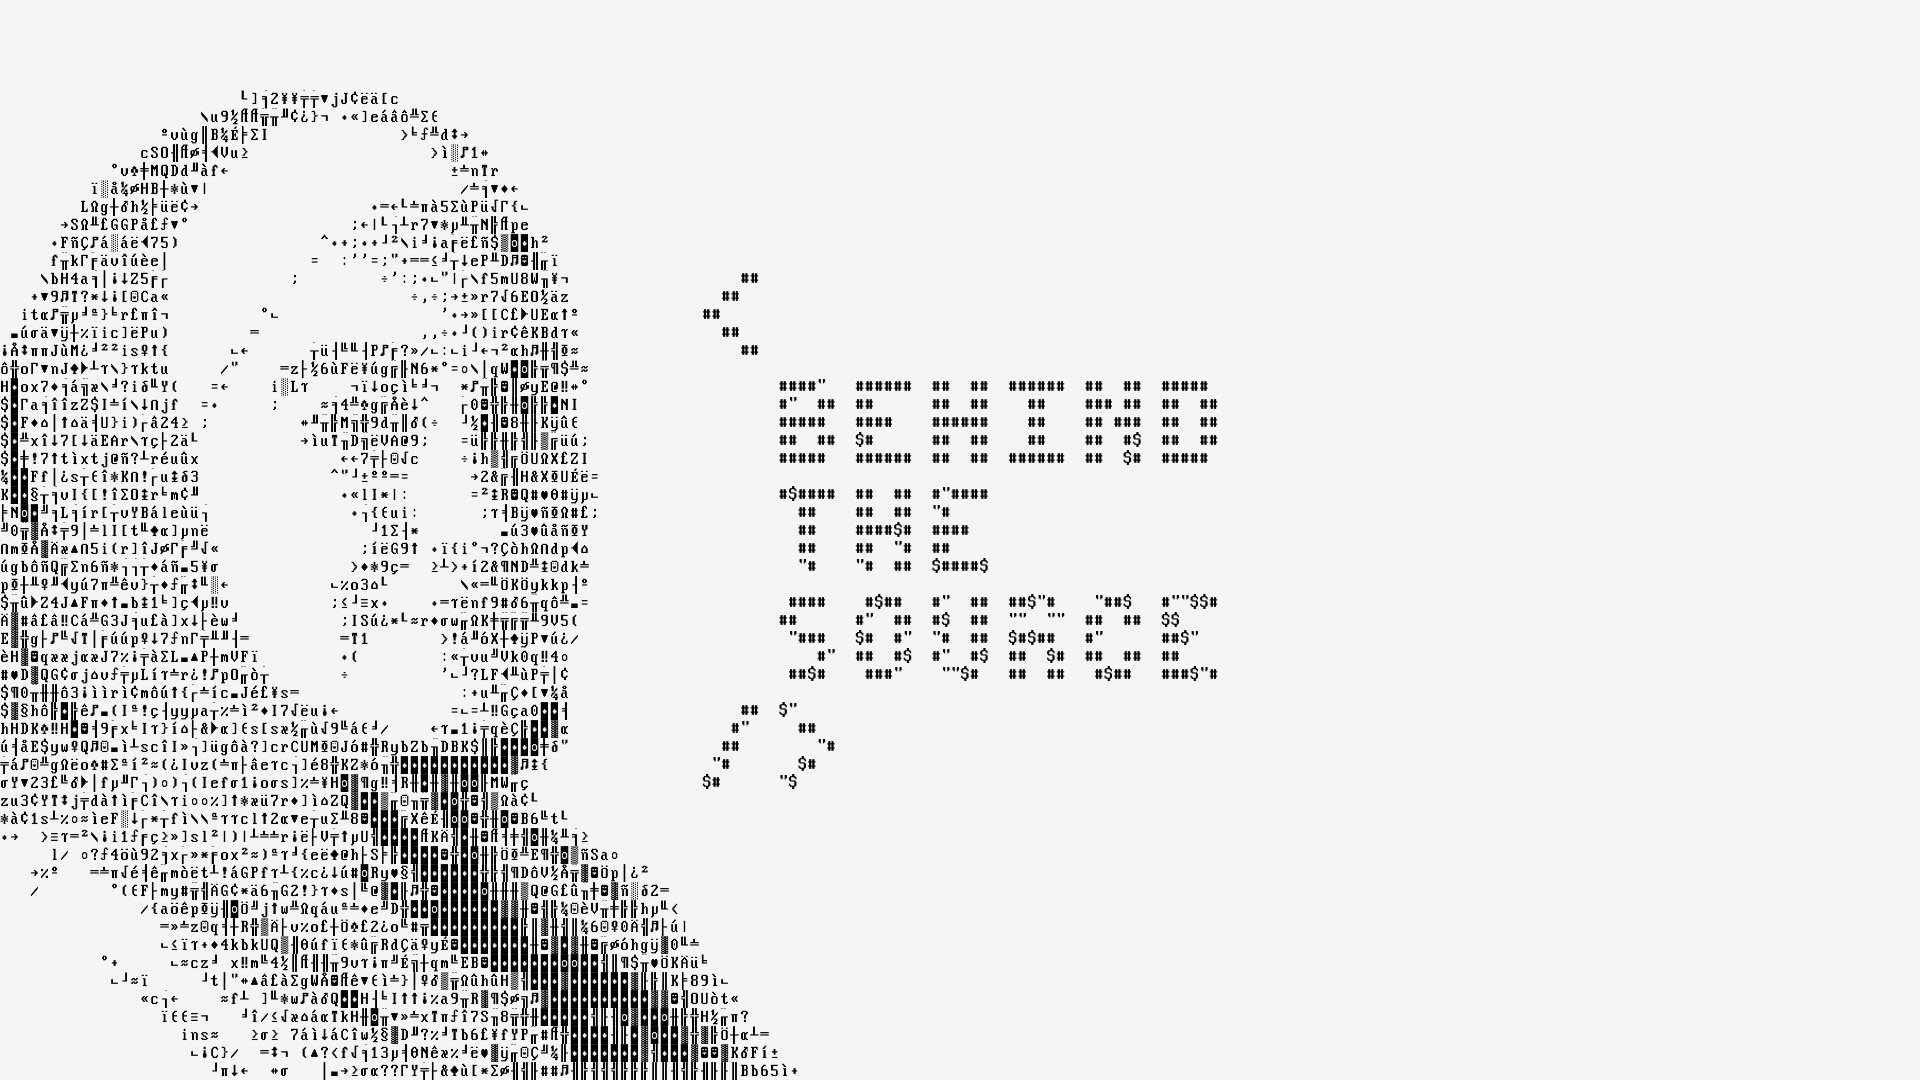 Thumbnail for HackYourFuture - Behind the Source